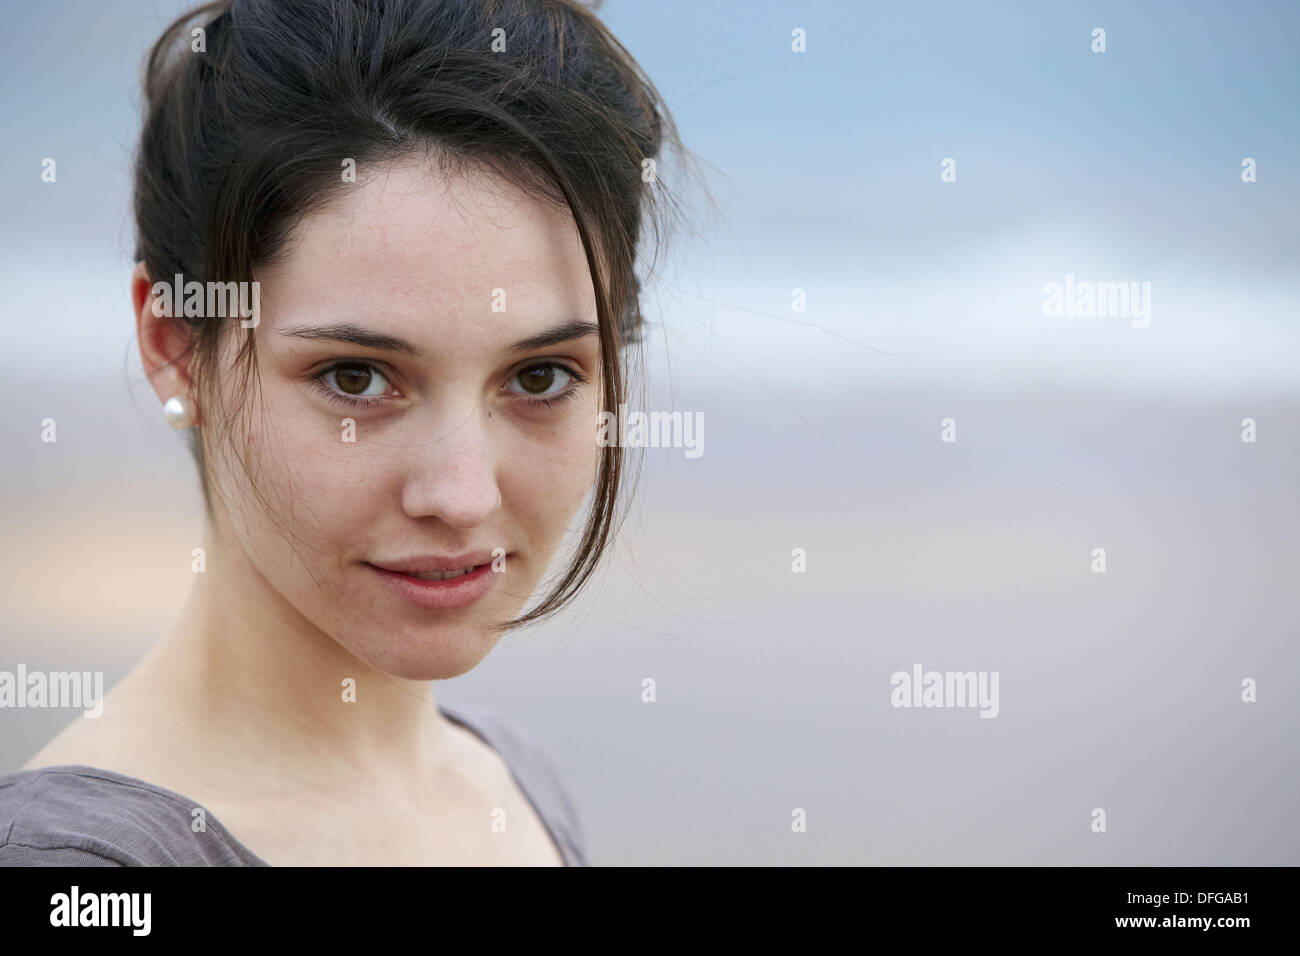 20 year old girl - Stock Image